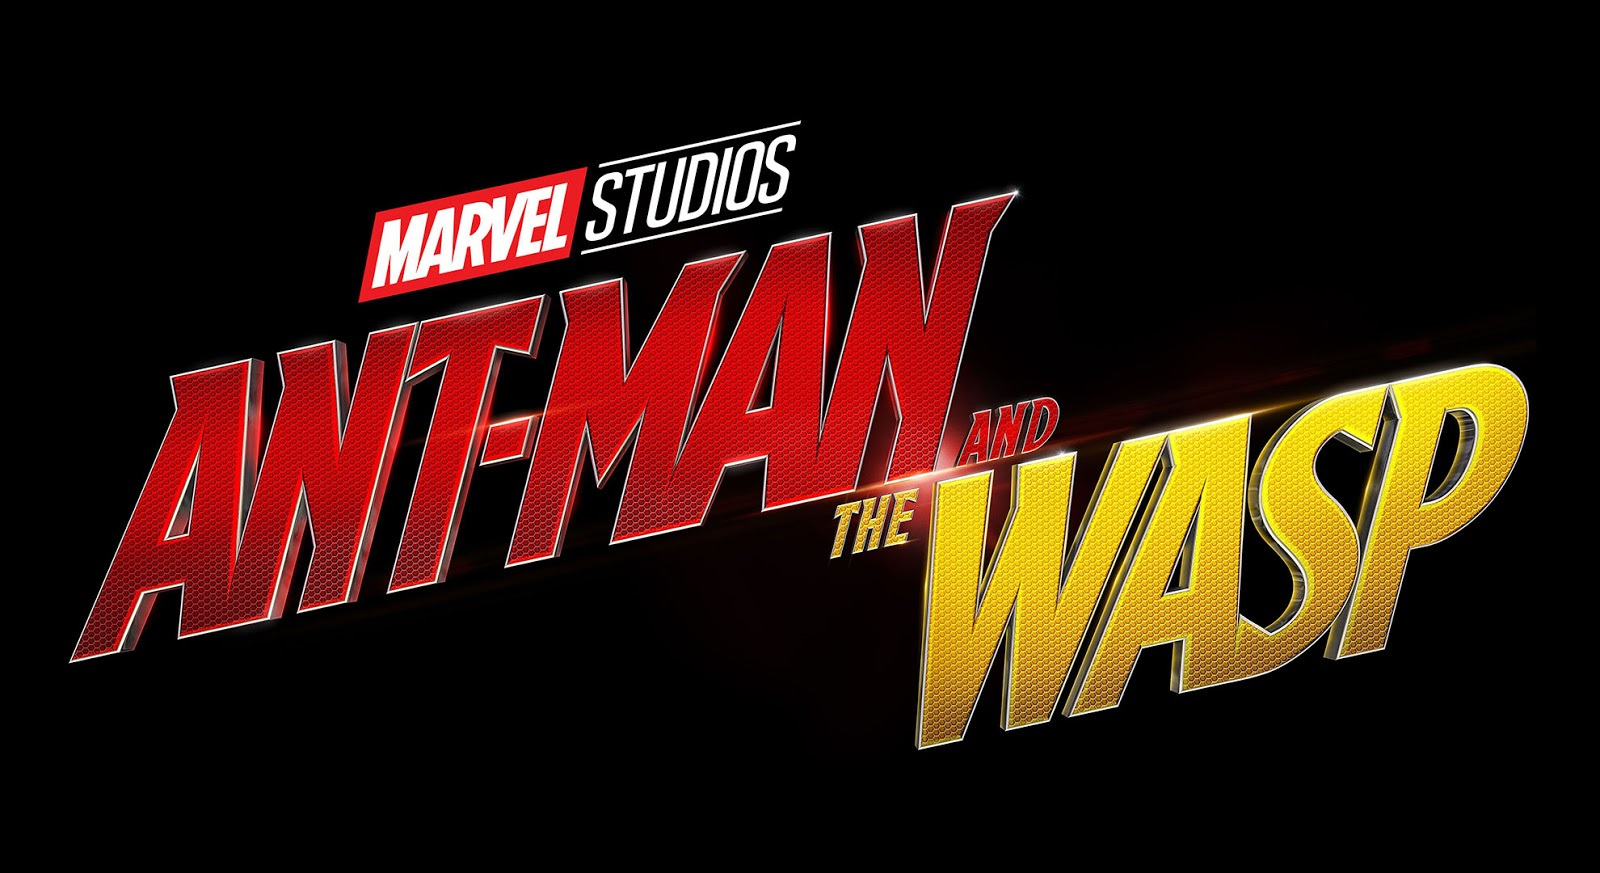 movie review Ant-Man and the Wasp podcast